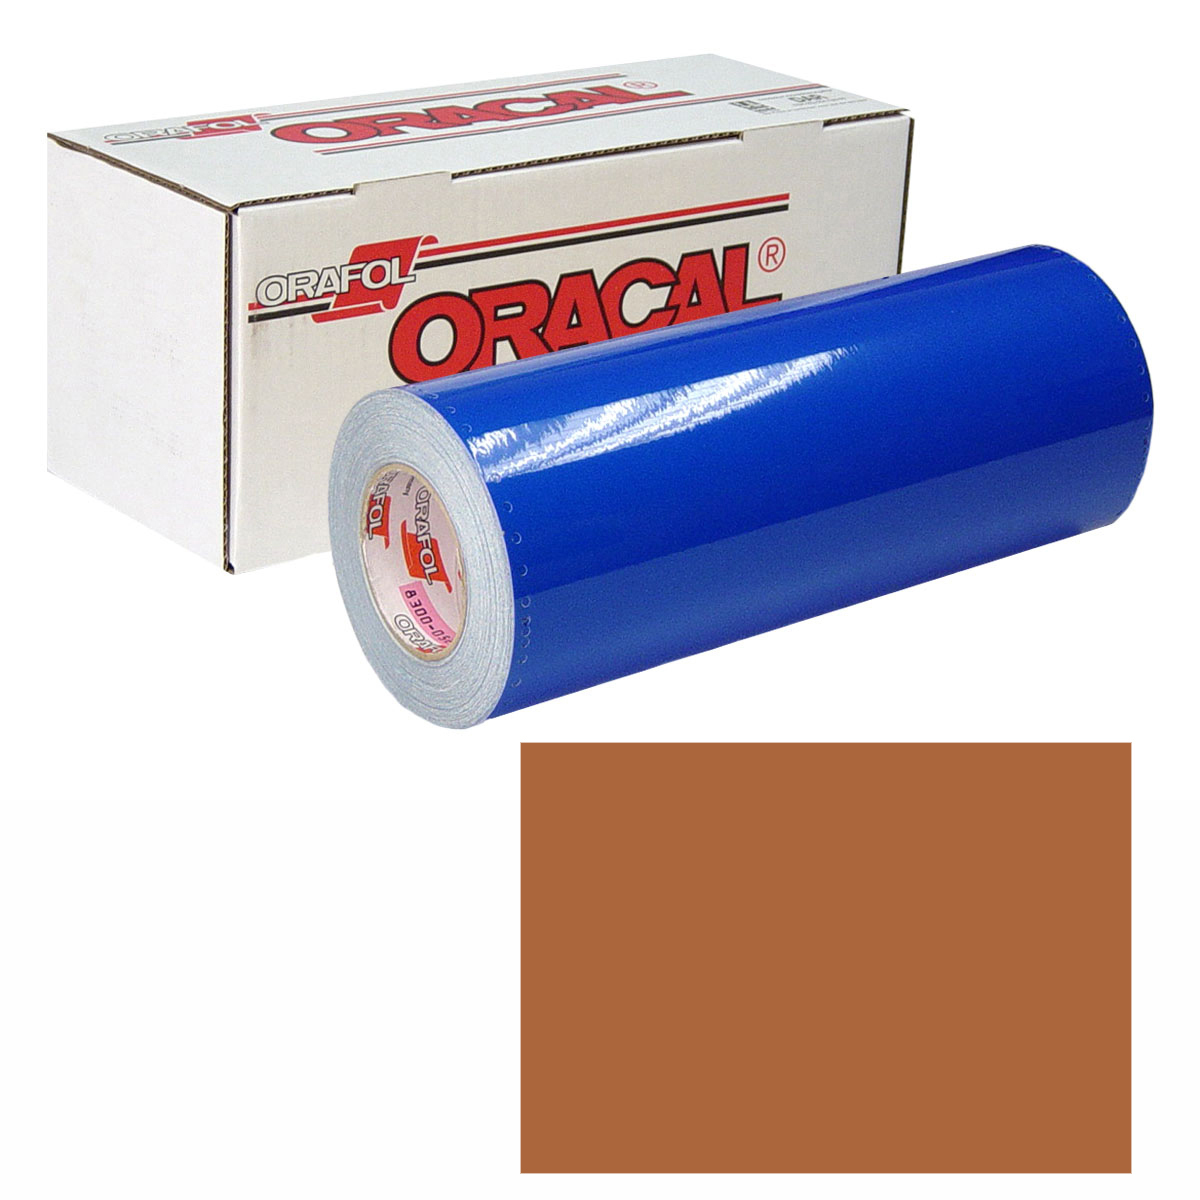 ORACAL 631 Unp 48In X 50Yd 092 Copper Met